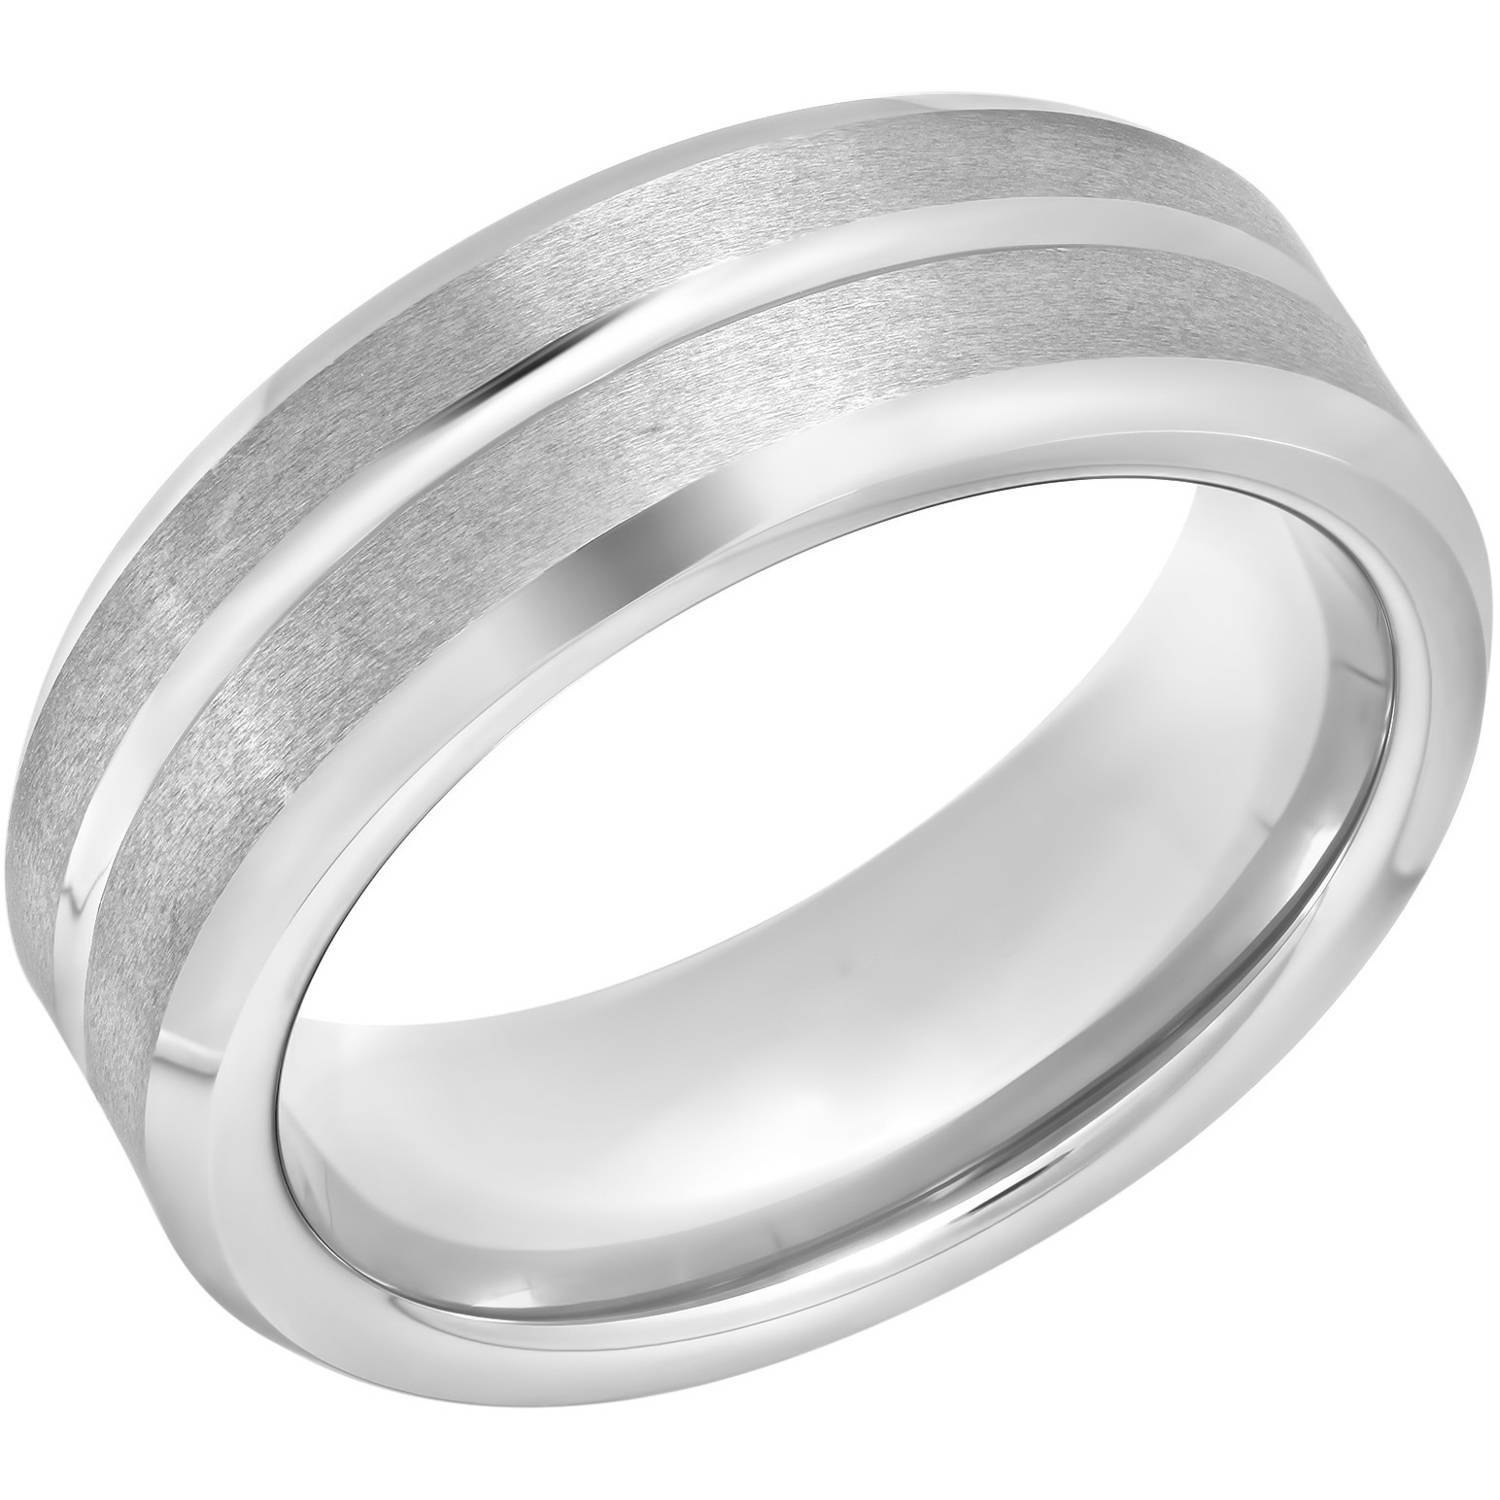 Men's Tungsten 8Mm Satin And High Polish Grooved Wedding Band Inside Walmart Men's Wedding Bands (View 10 of 15)